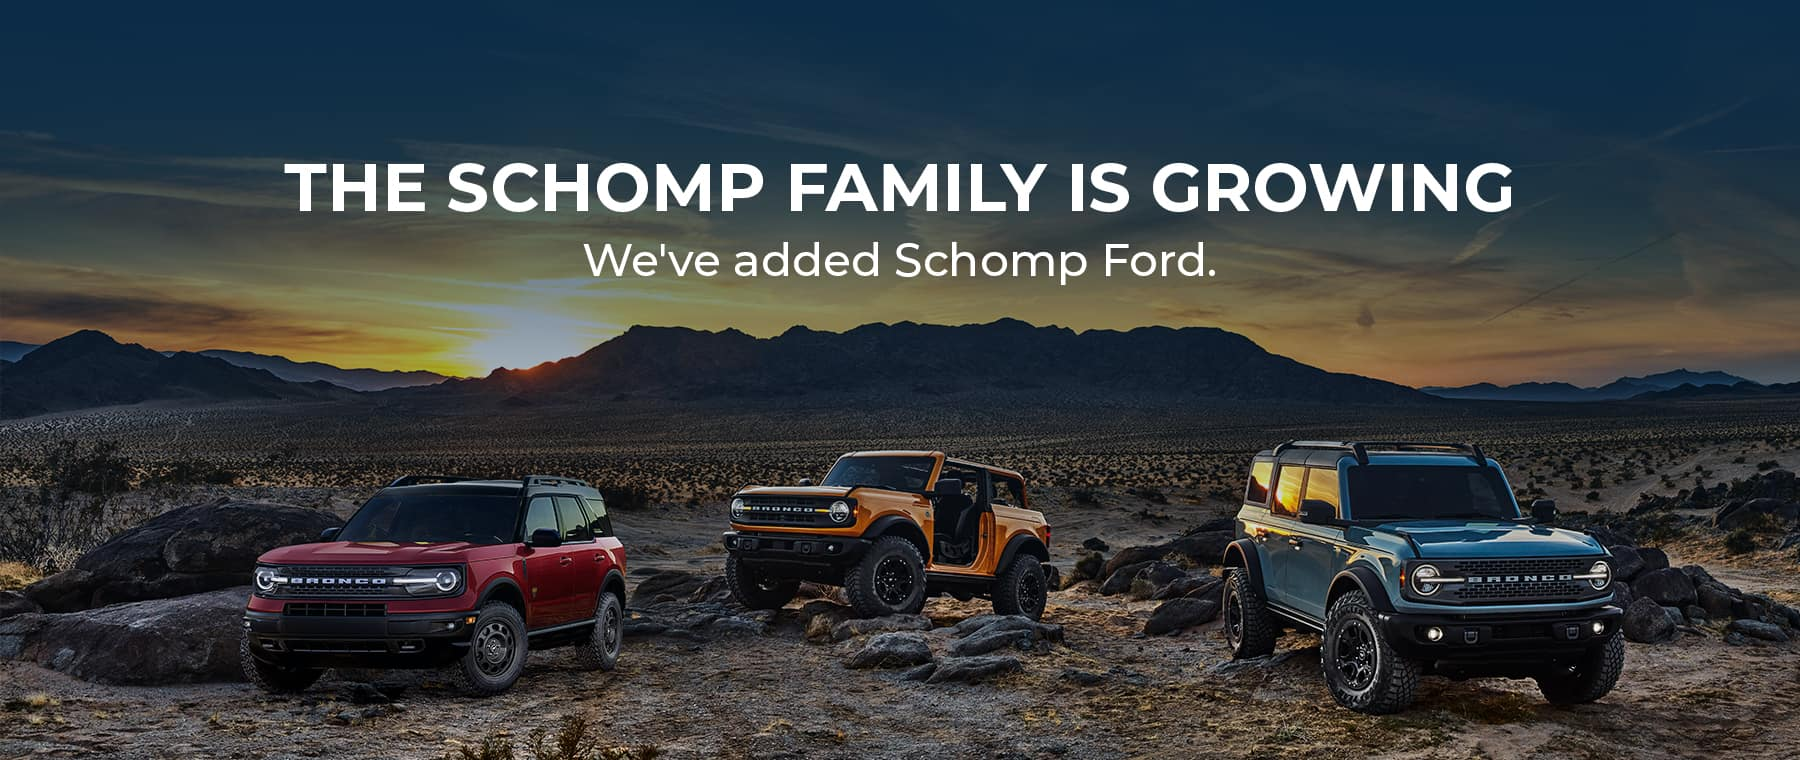 schomp-ford-announcement